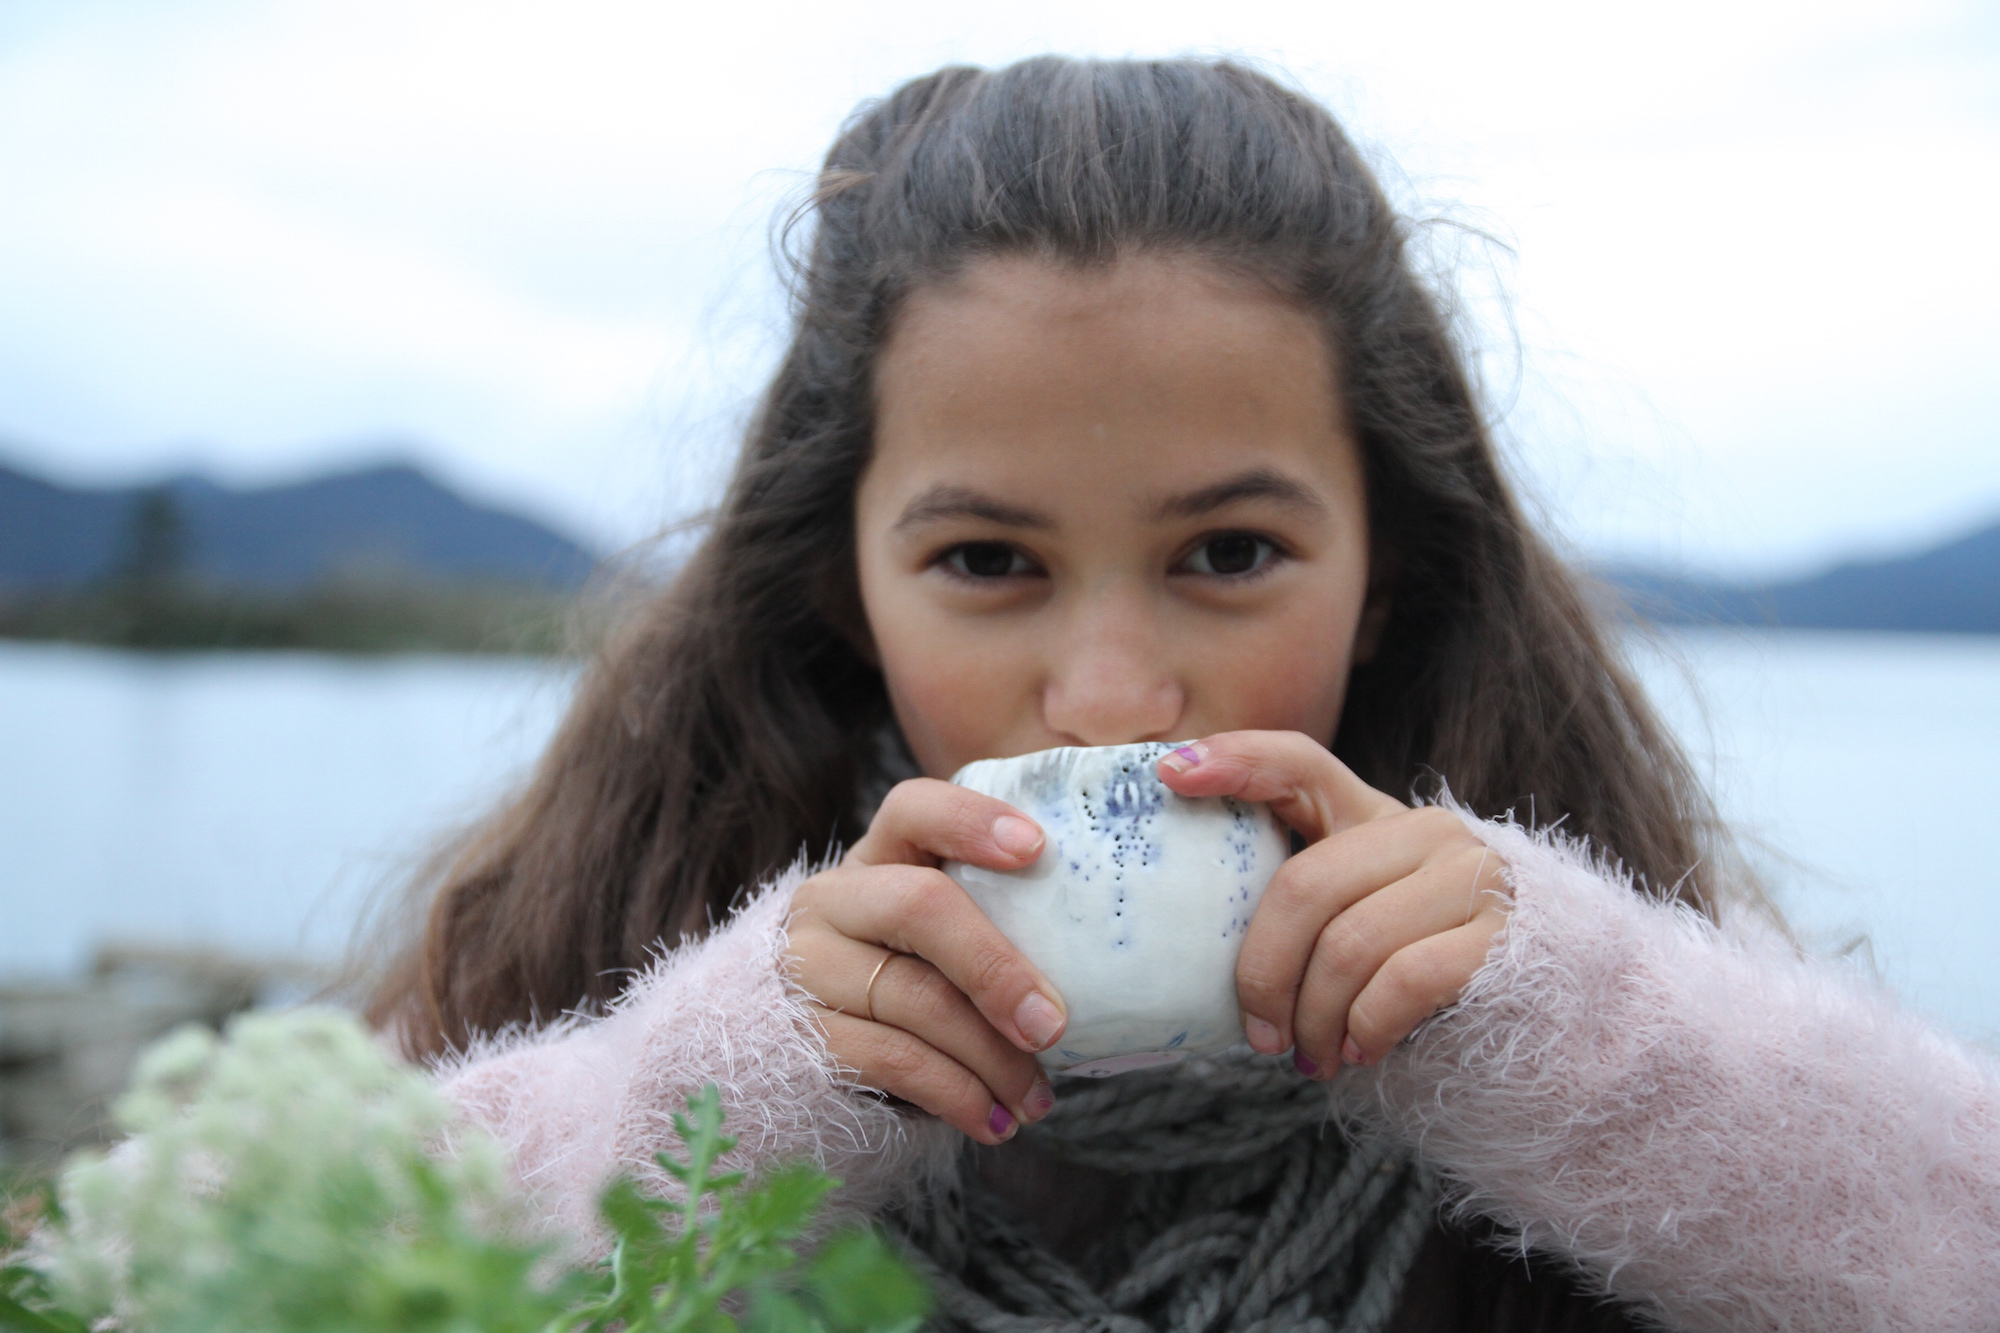 Isabella enjoying a warm cup of tea at our winter picnic. Photo by Gray G.